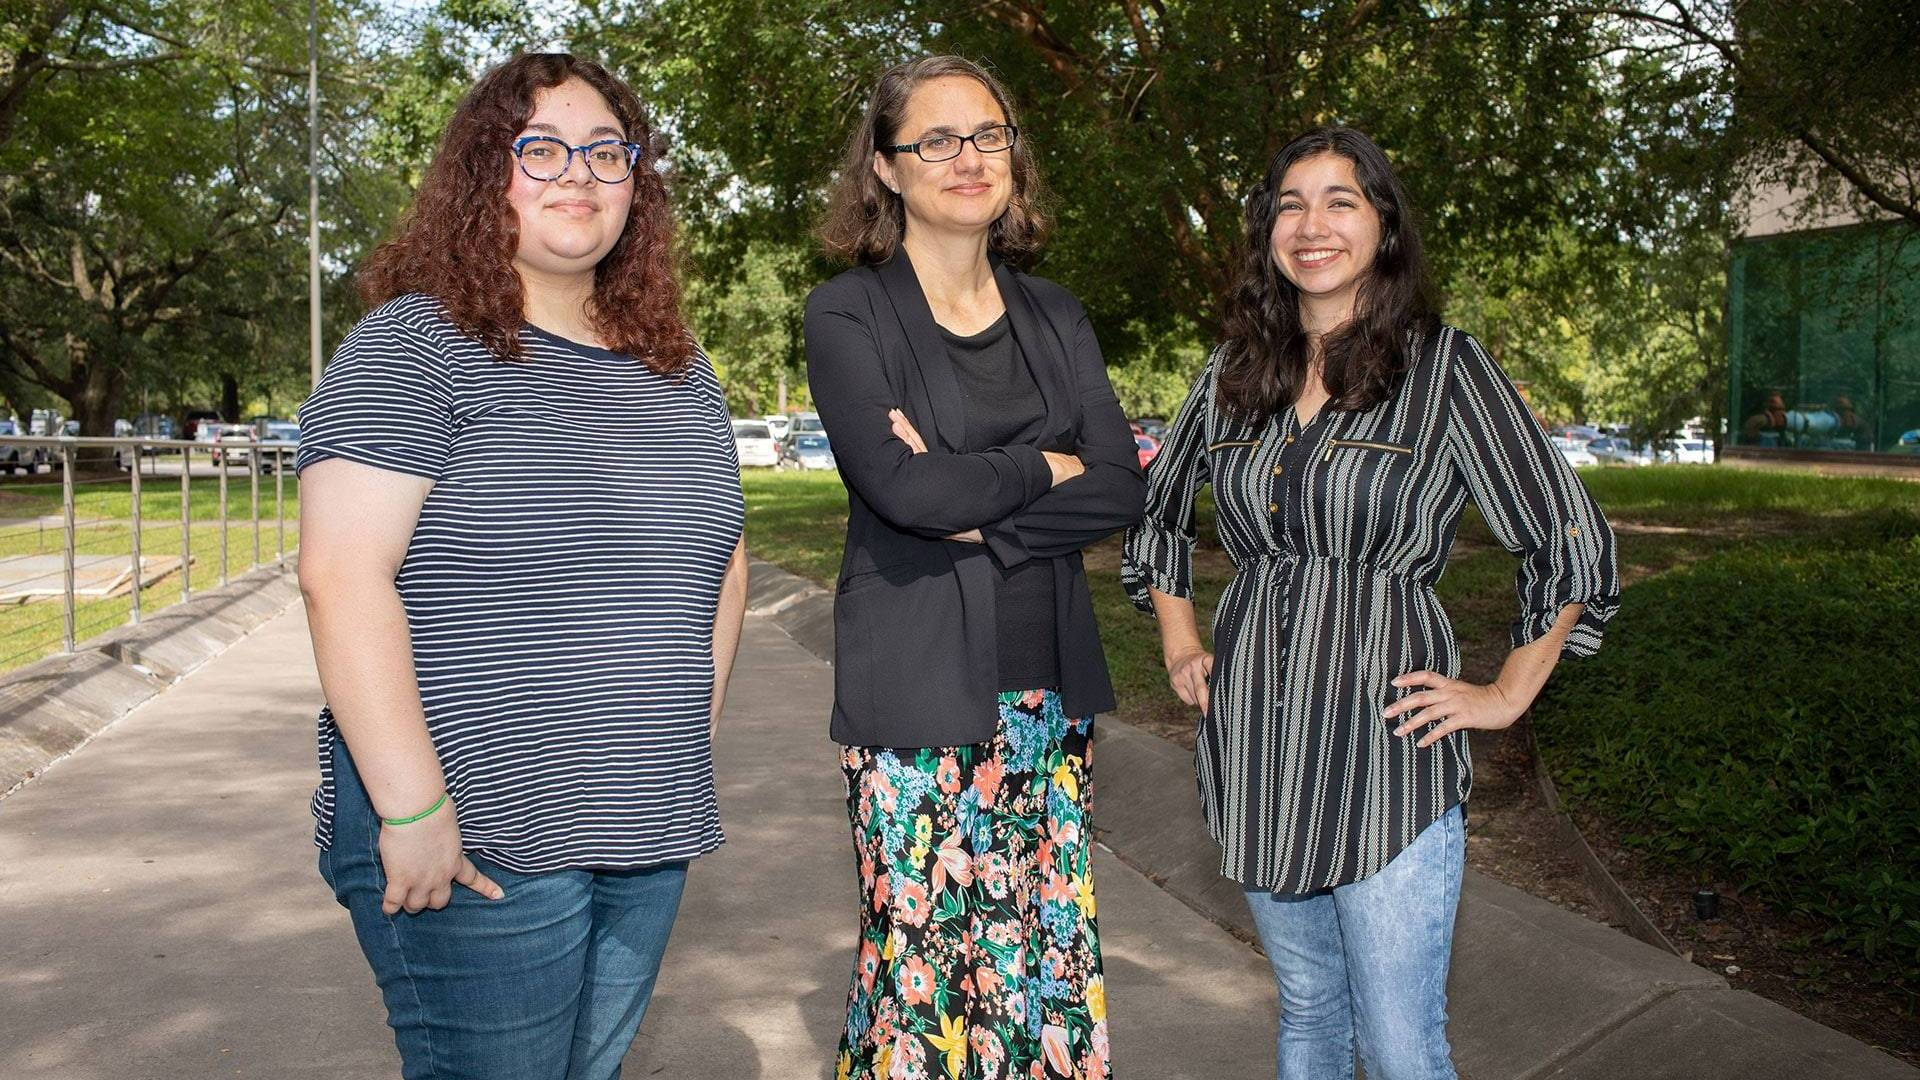 Anthropology prof and students win grant to study migrant health issues